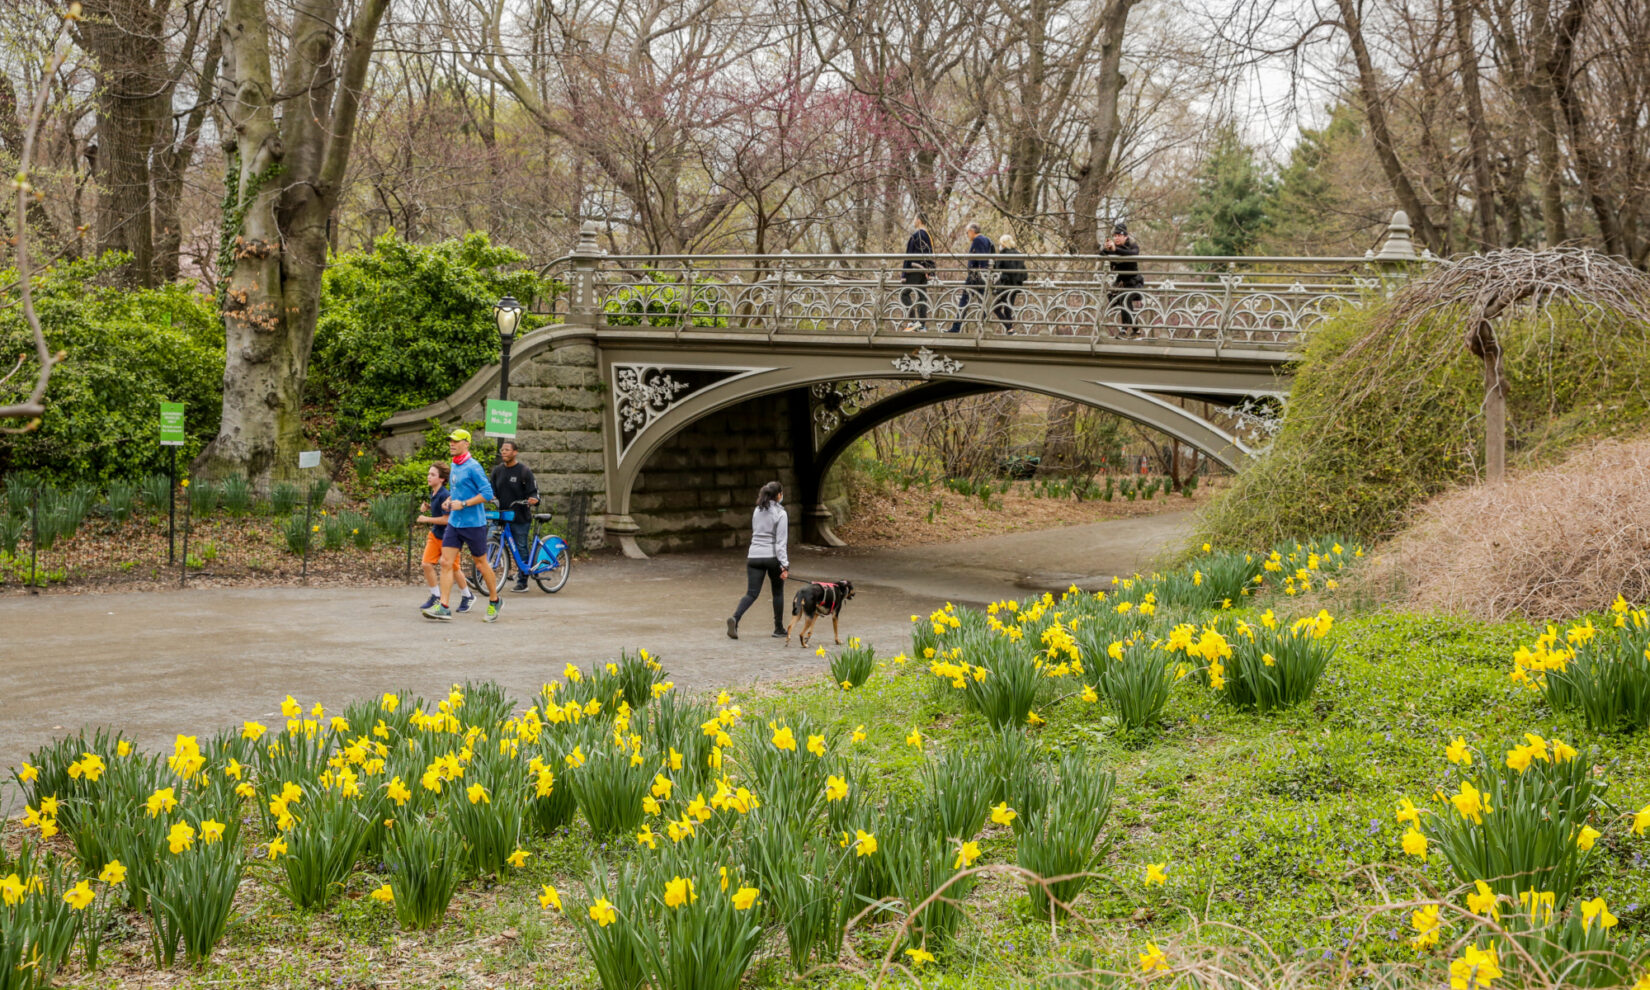 Park goers enjoy the view of early-spring daffodils while they stroll below, and across, Bridge 24.